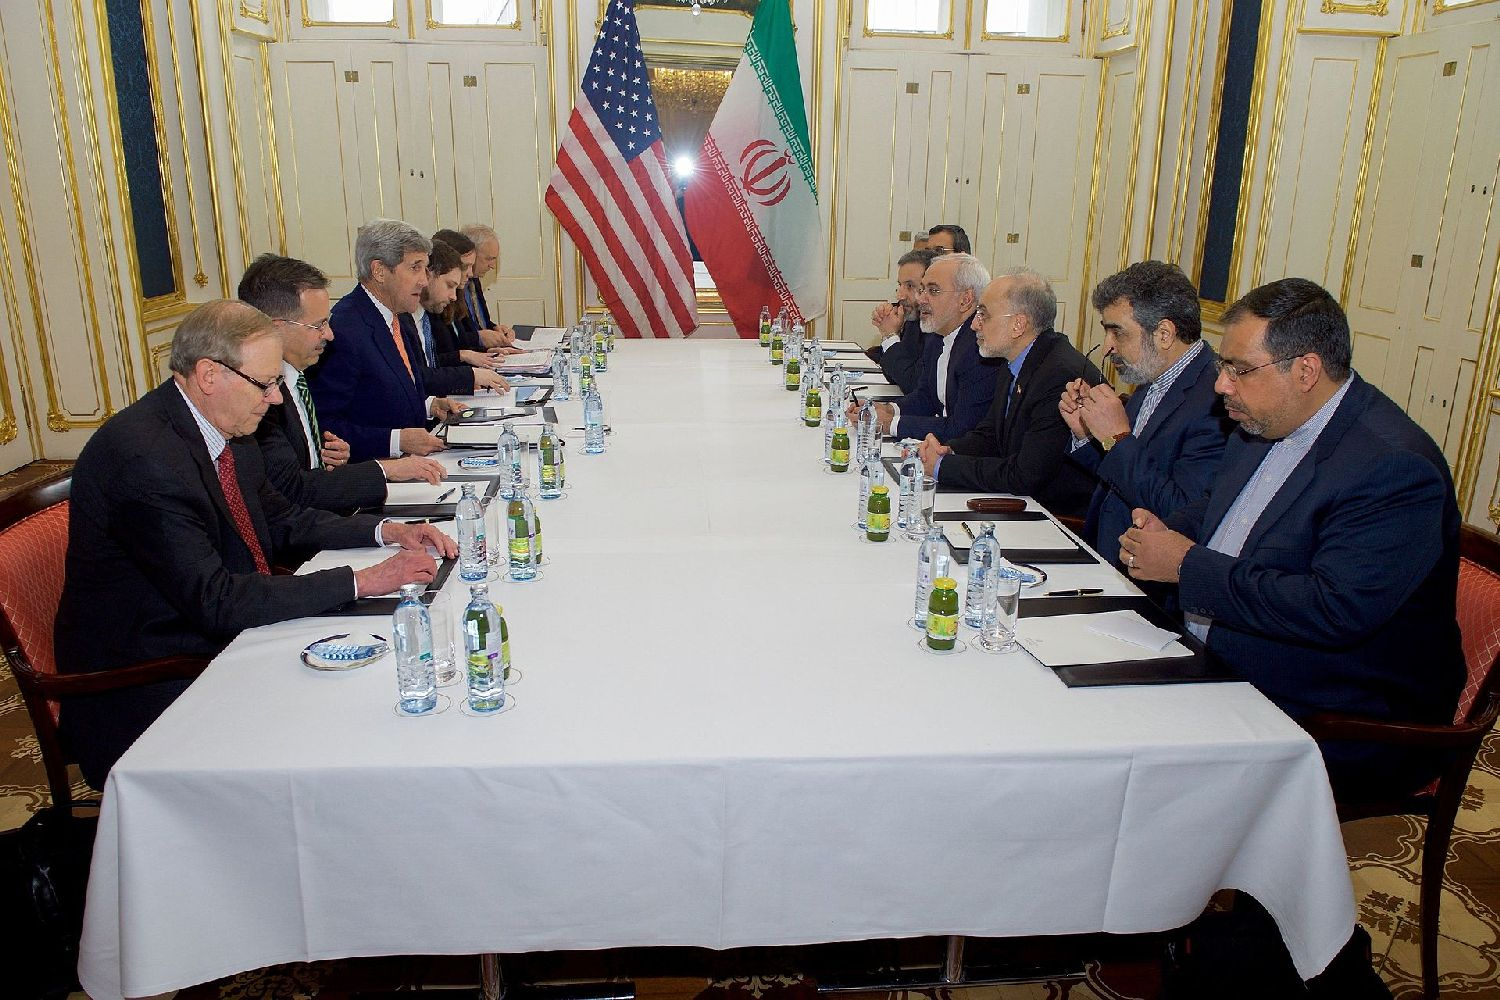 Prospects for the development of U.S.-Iran relations